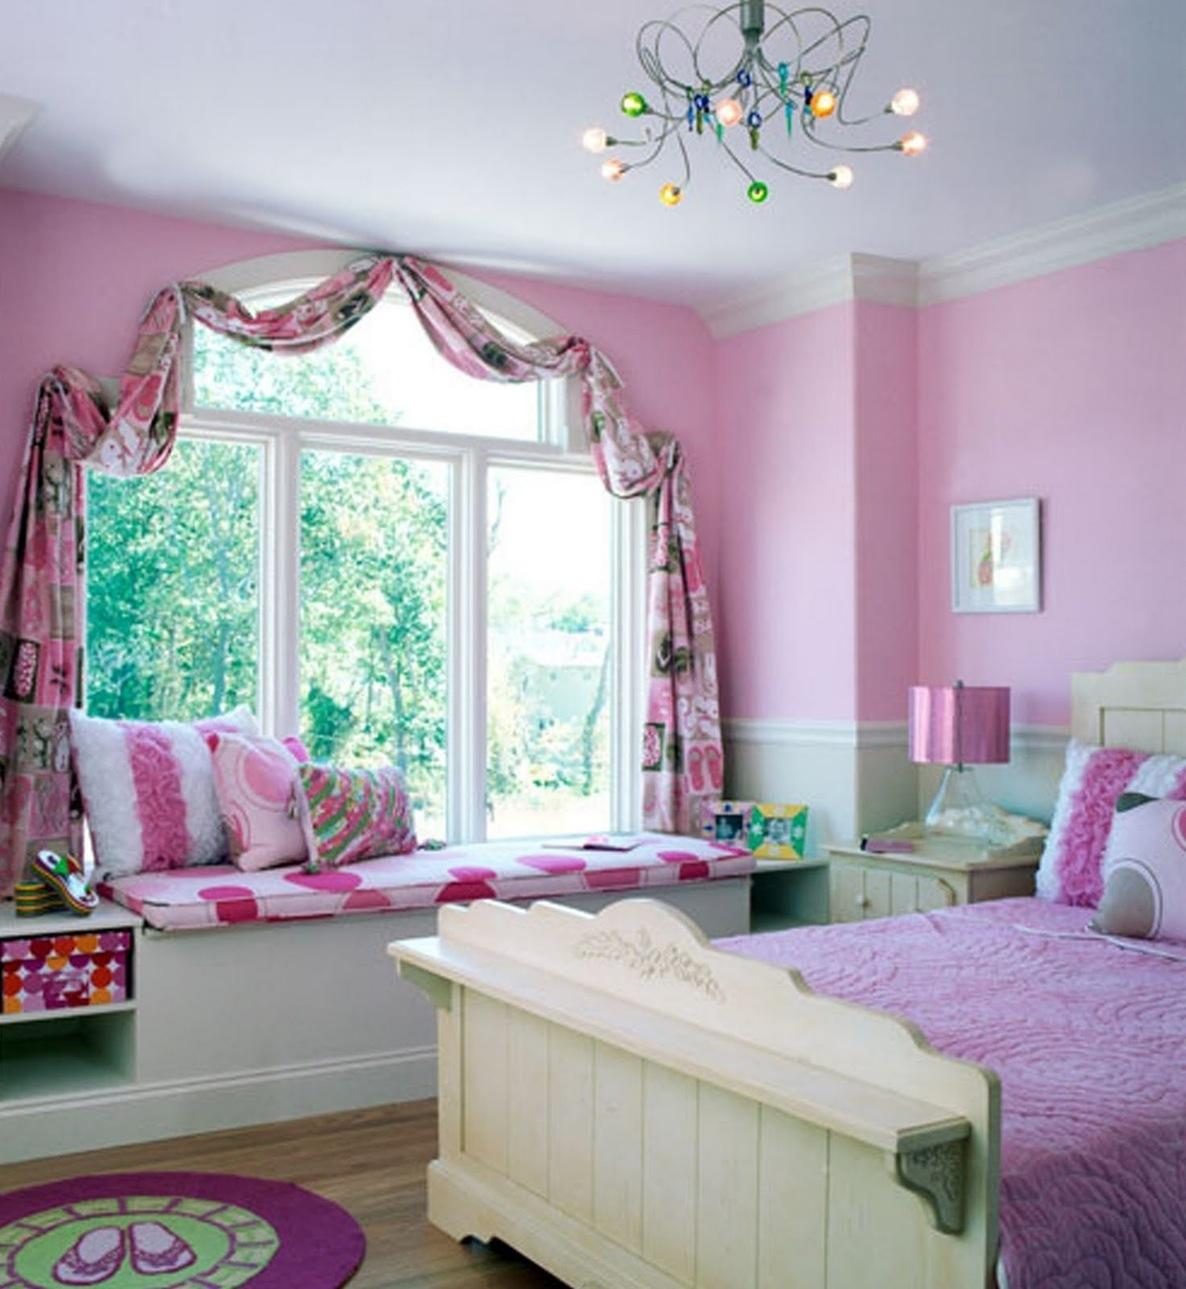 Cute Bedroom Ideas for Teenage Girl & 50 Excellent Teen Girl\u0027s Bedroom Ideas and Designs - InteriorSherpa